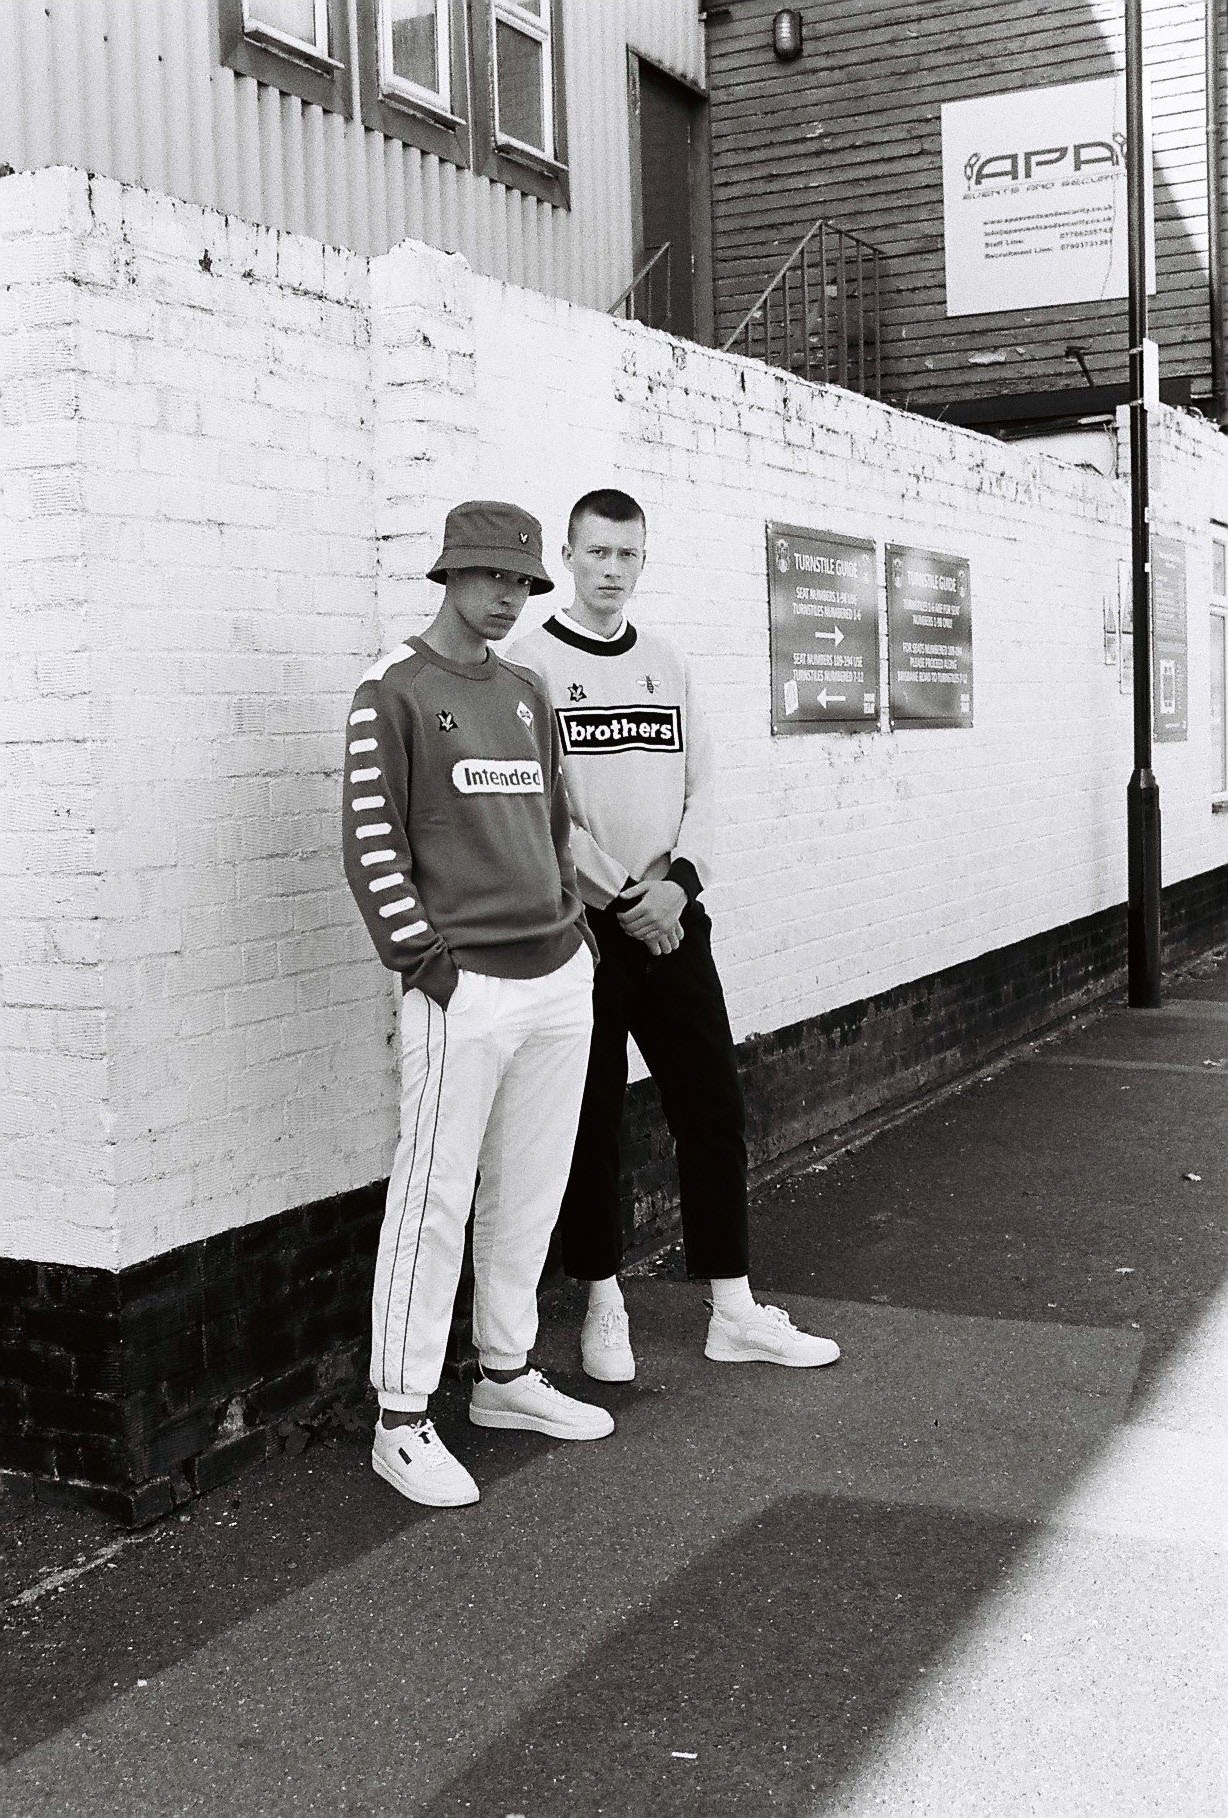 B/W, outside football ground by fashion photographer Tim Cole